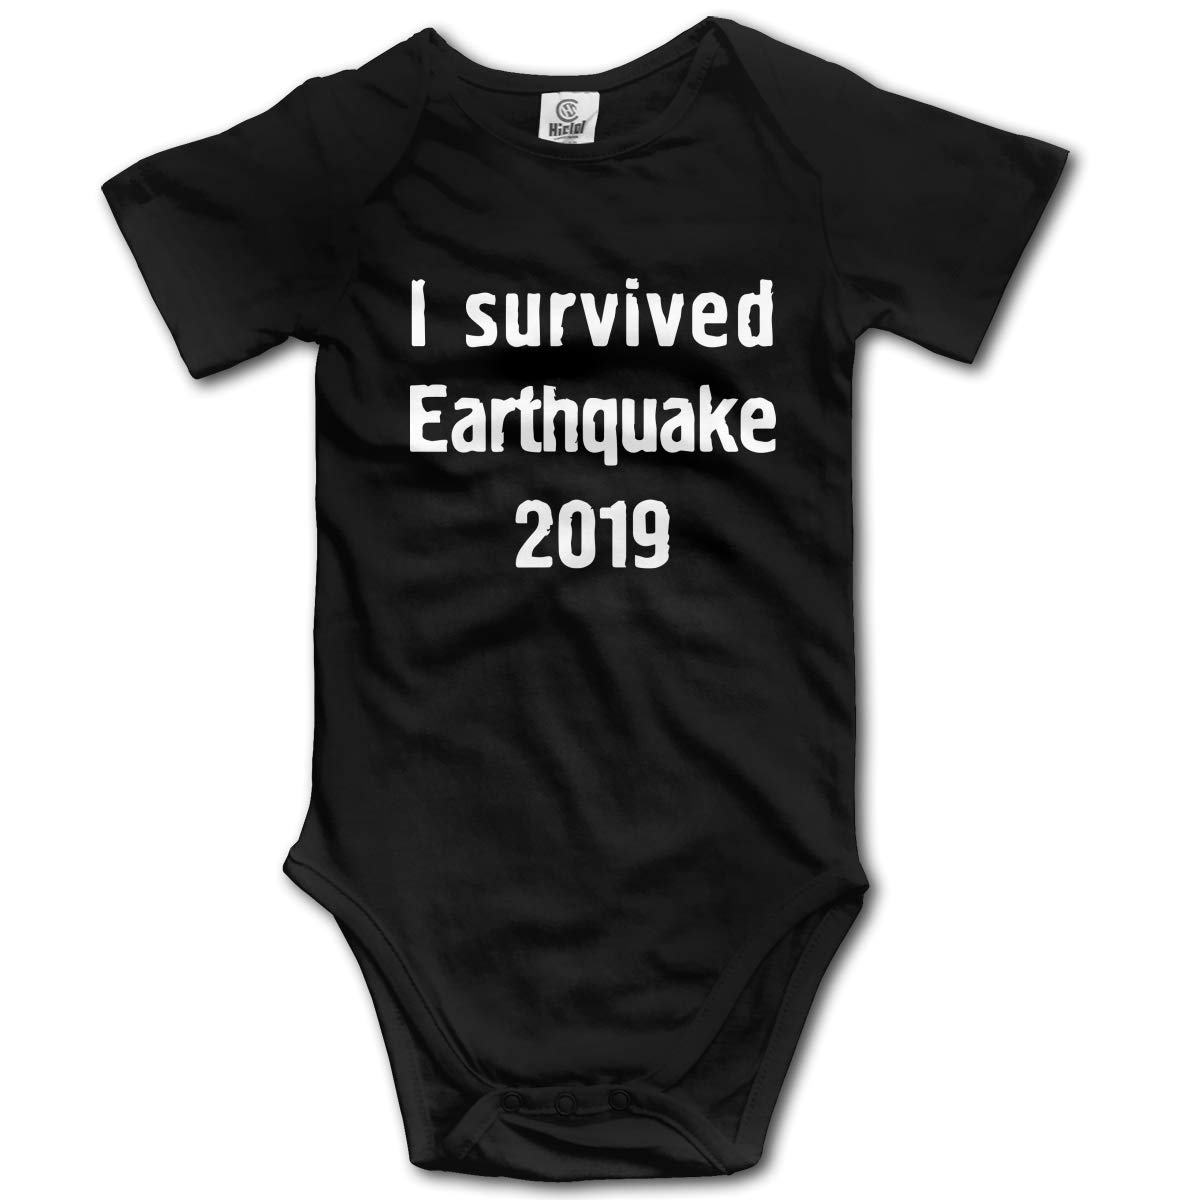 I Survived Earthquake 2019 Newborn Infant Baby Short Sleeve Outfits Sunsuit Clothes 0-24M